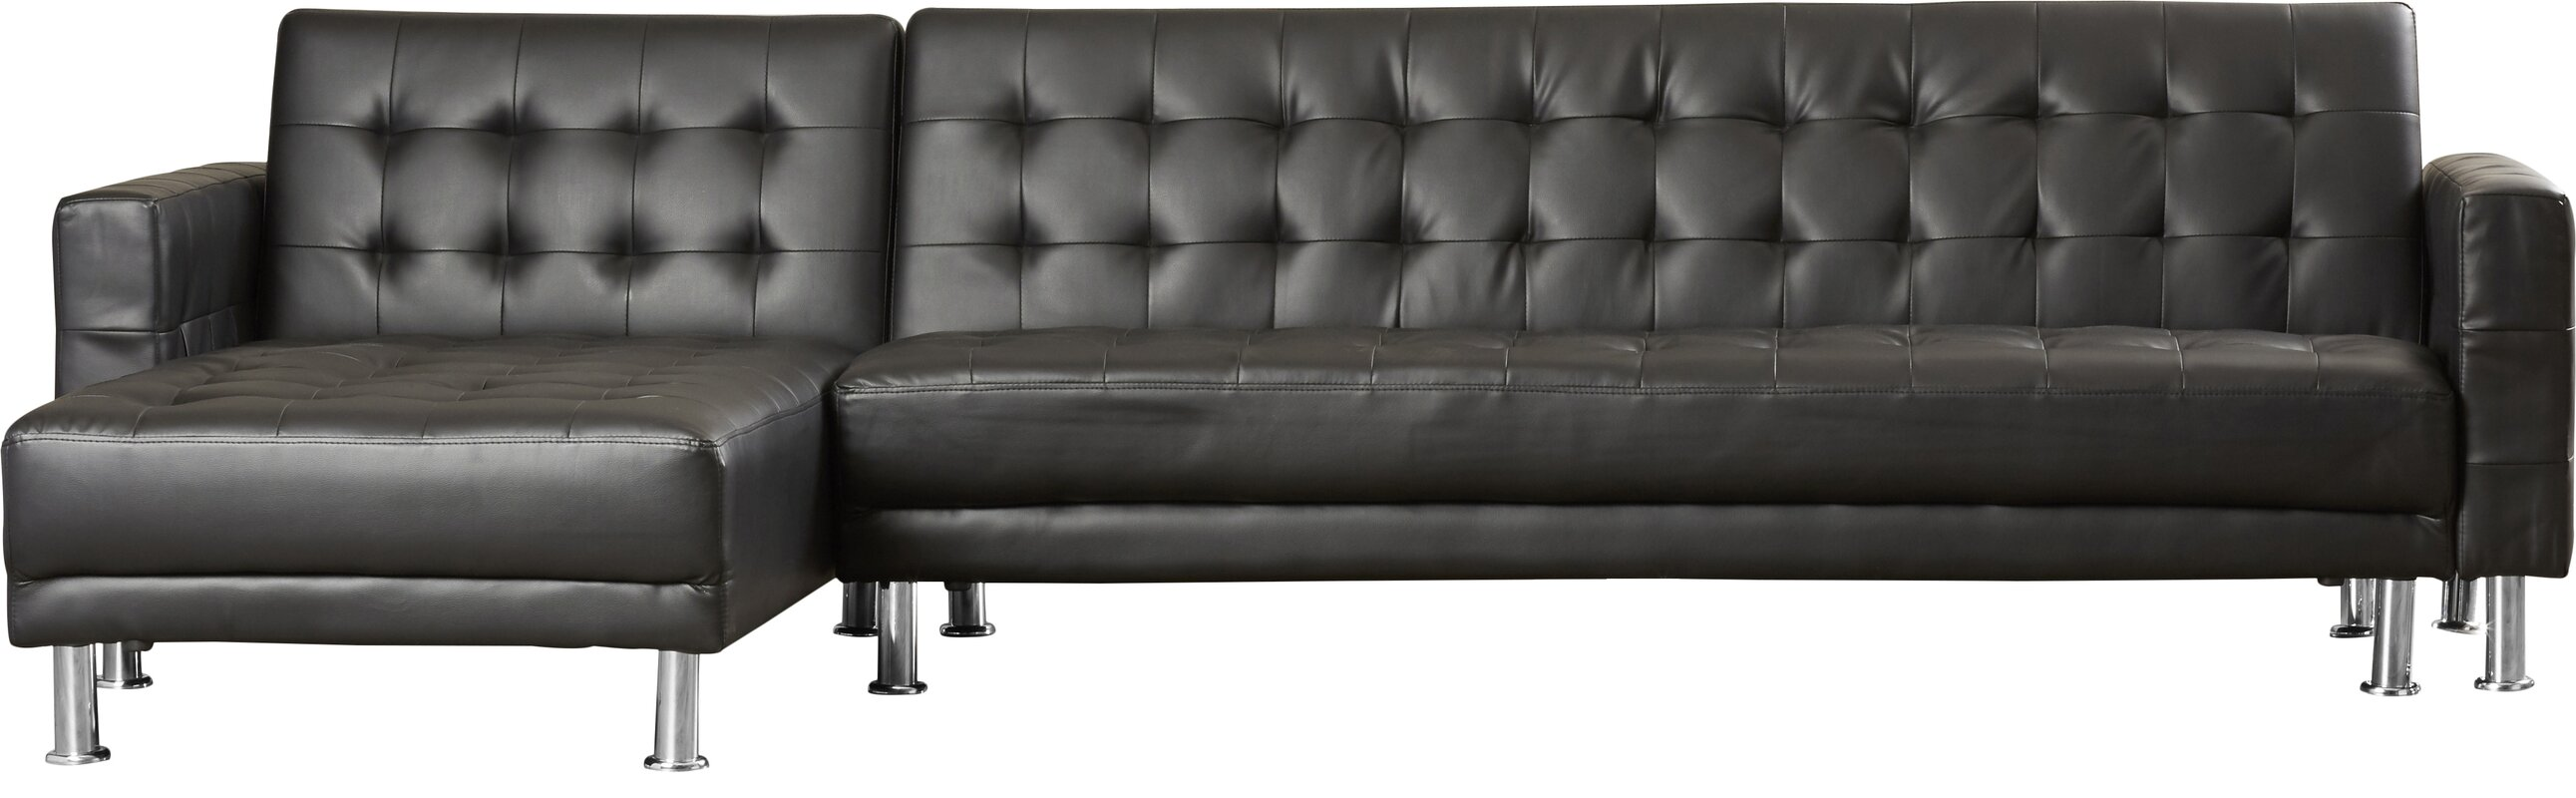 "Marion 116"" Sleeper Reversible Chaise Sectional & Reviews"